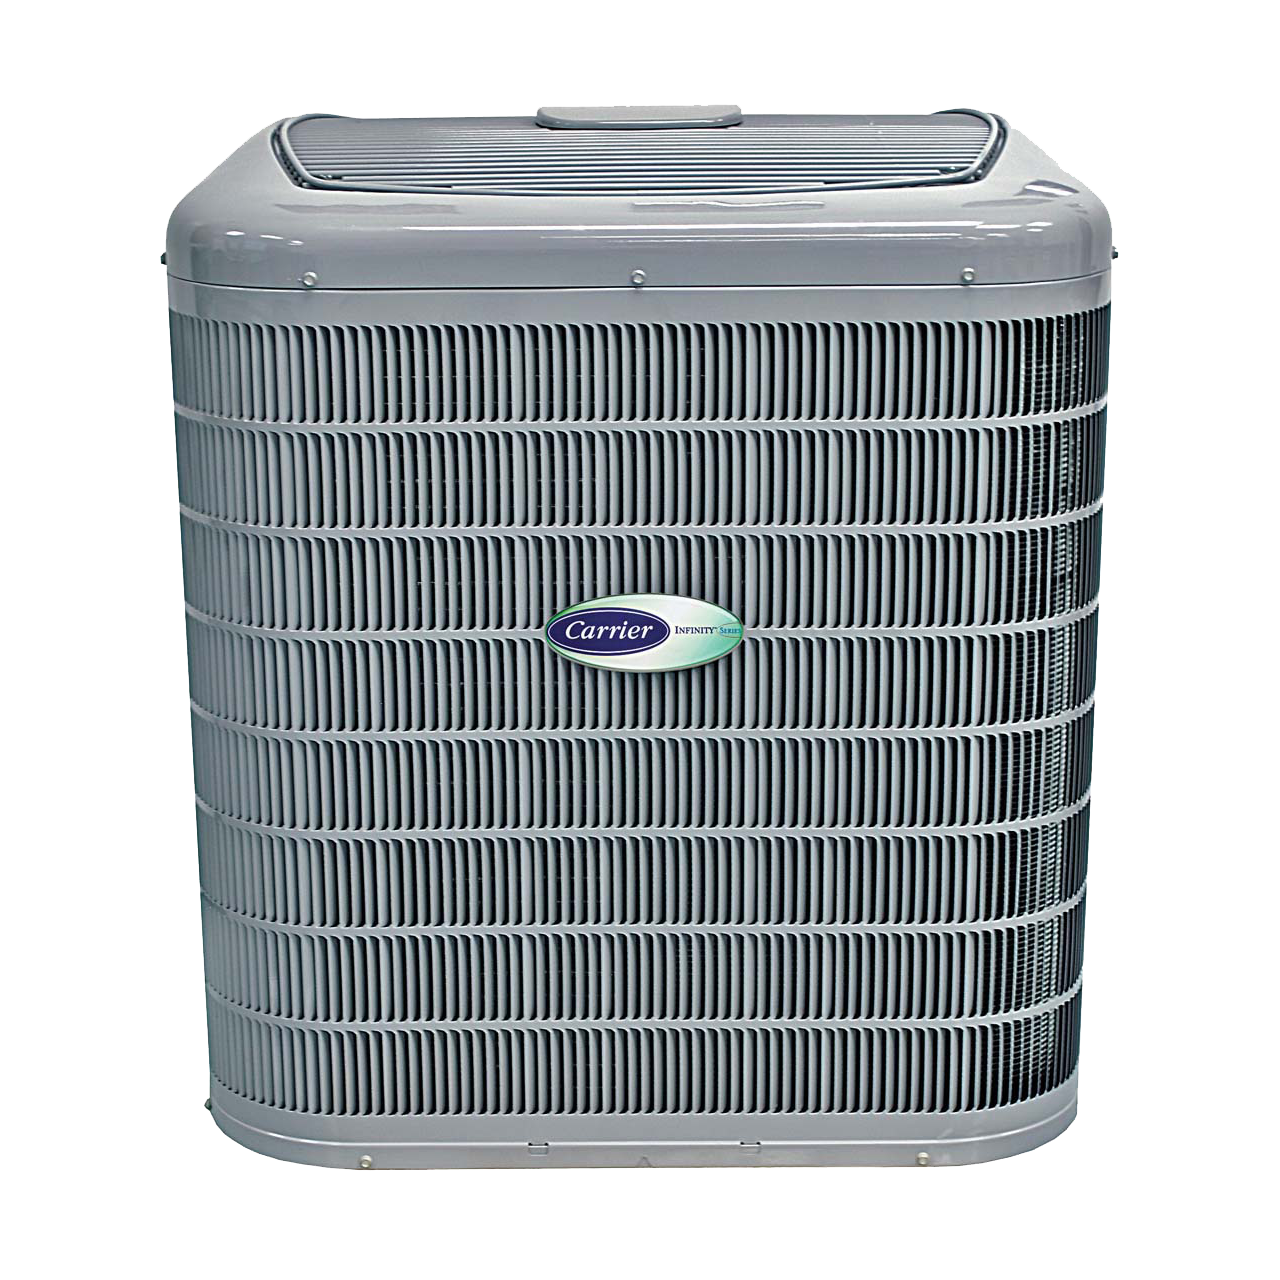 Infinity 21 Central Air Conditioner Unit 24anb1 Carrier Home Comfort